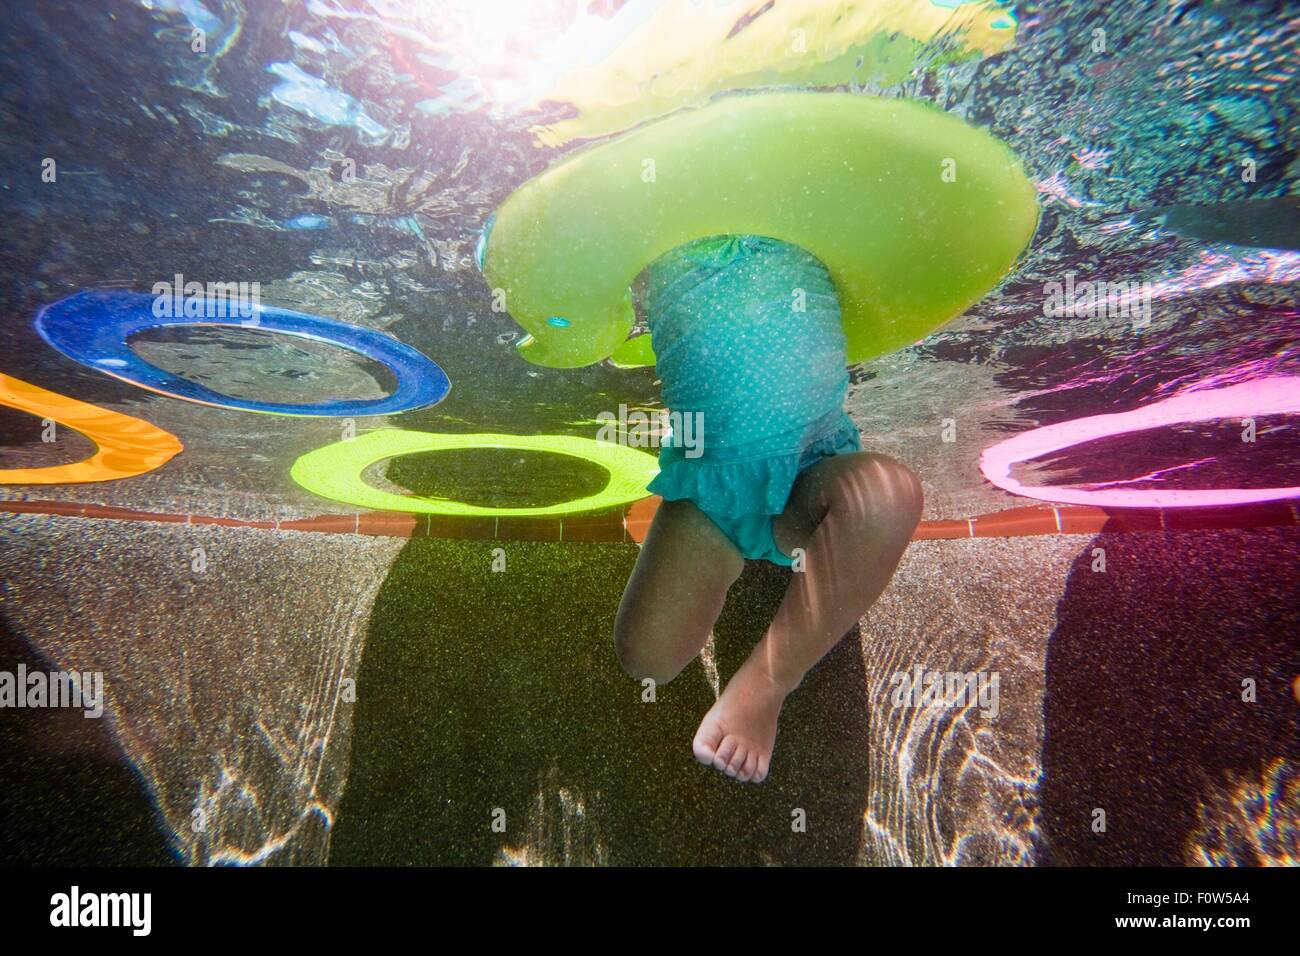 Underwater shot of girl kicking legs in swimming pool learning to swim with rubber ring - Stock Image